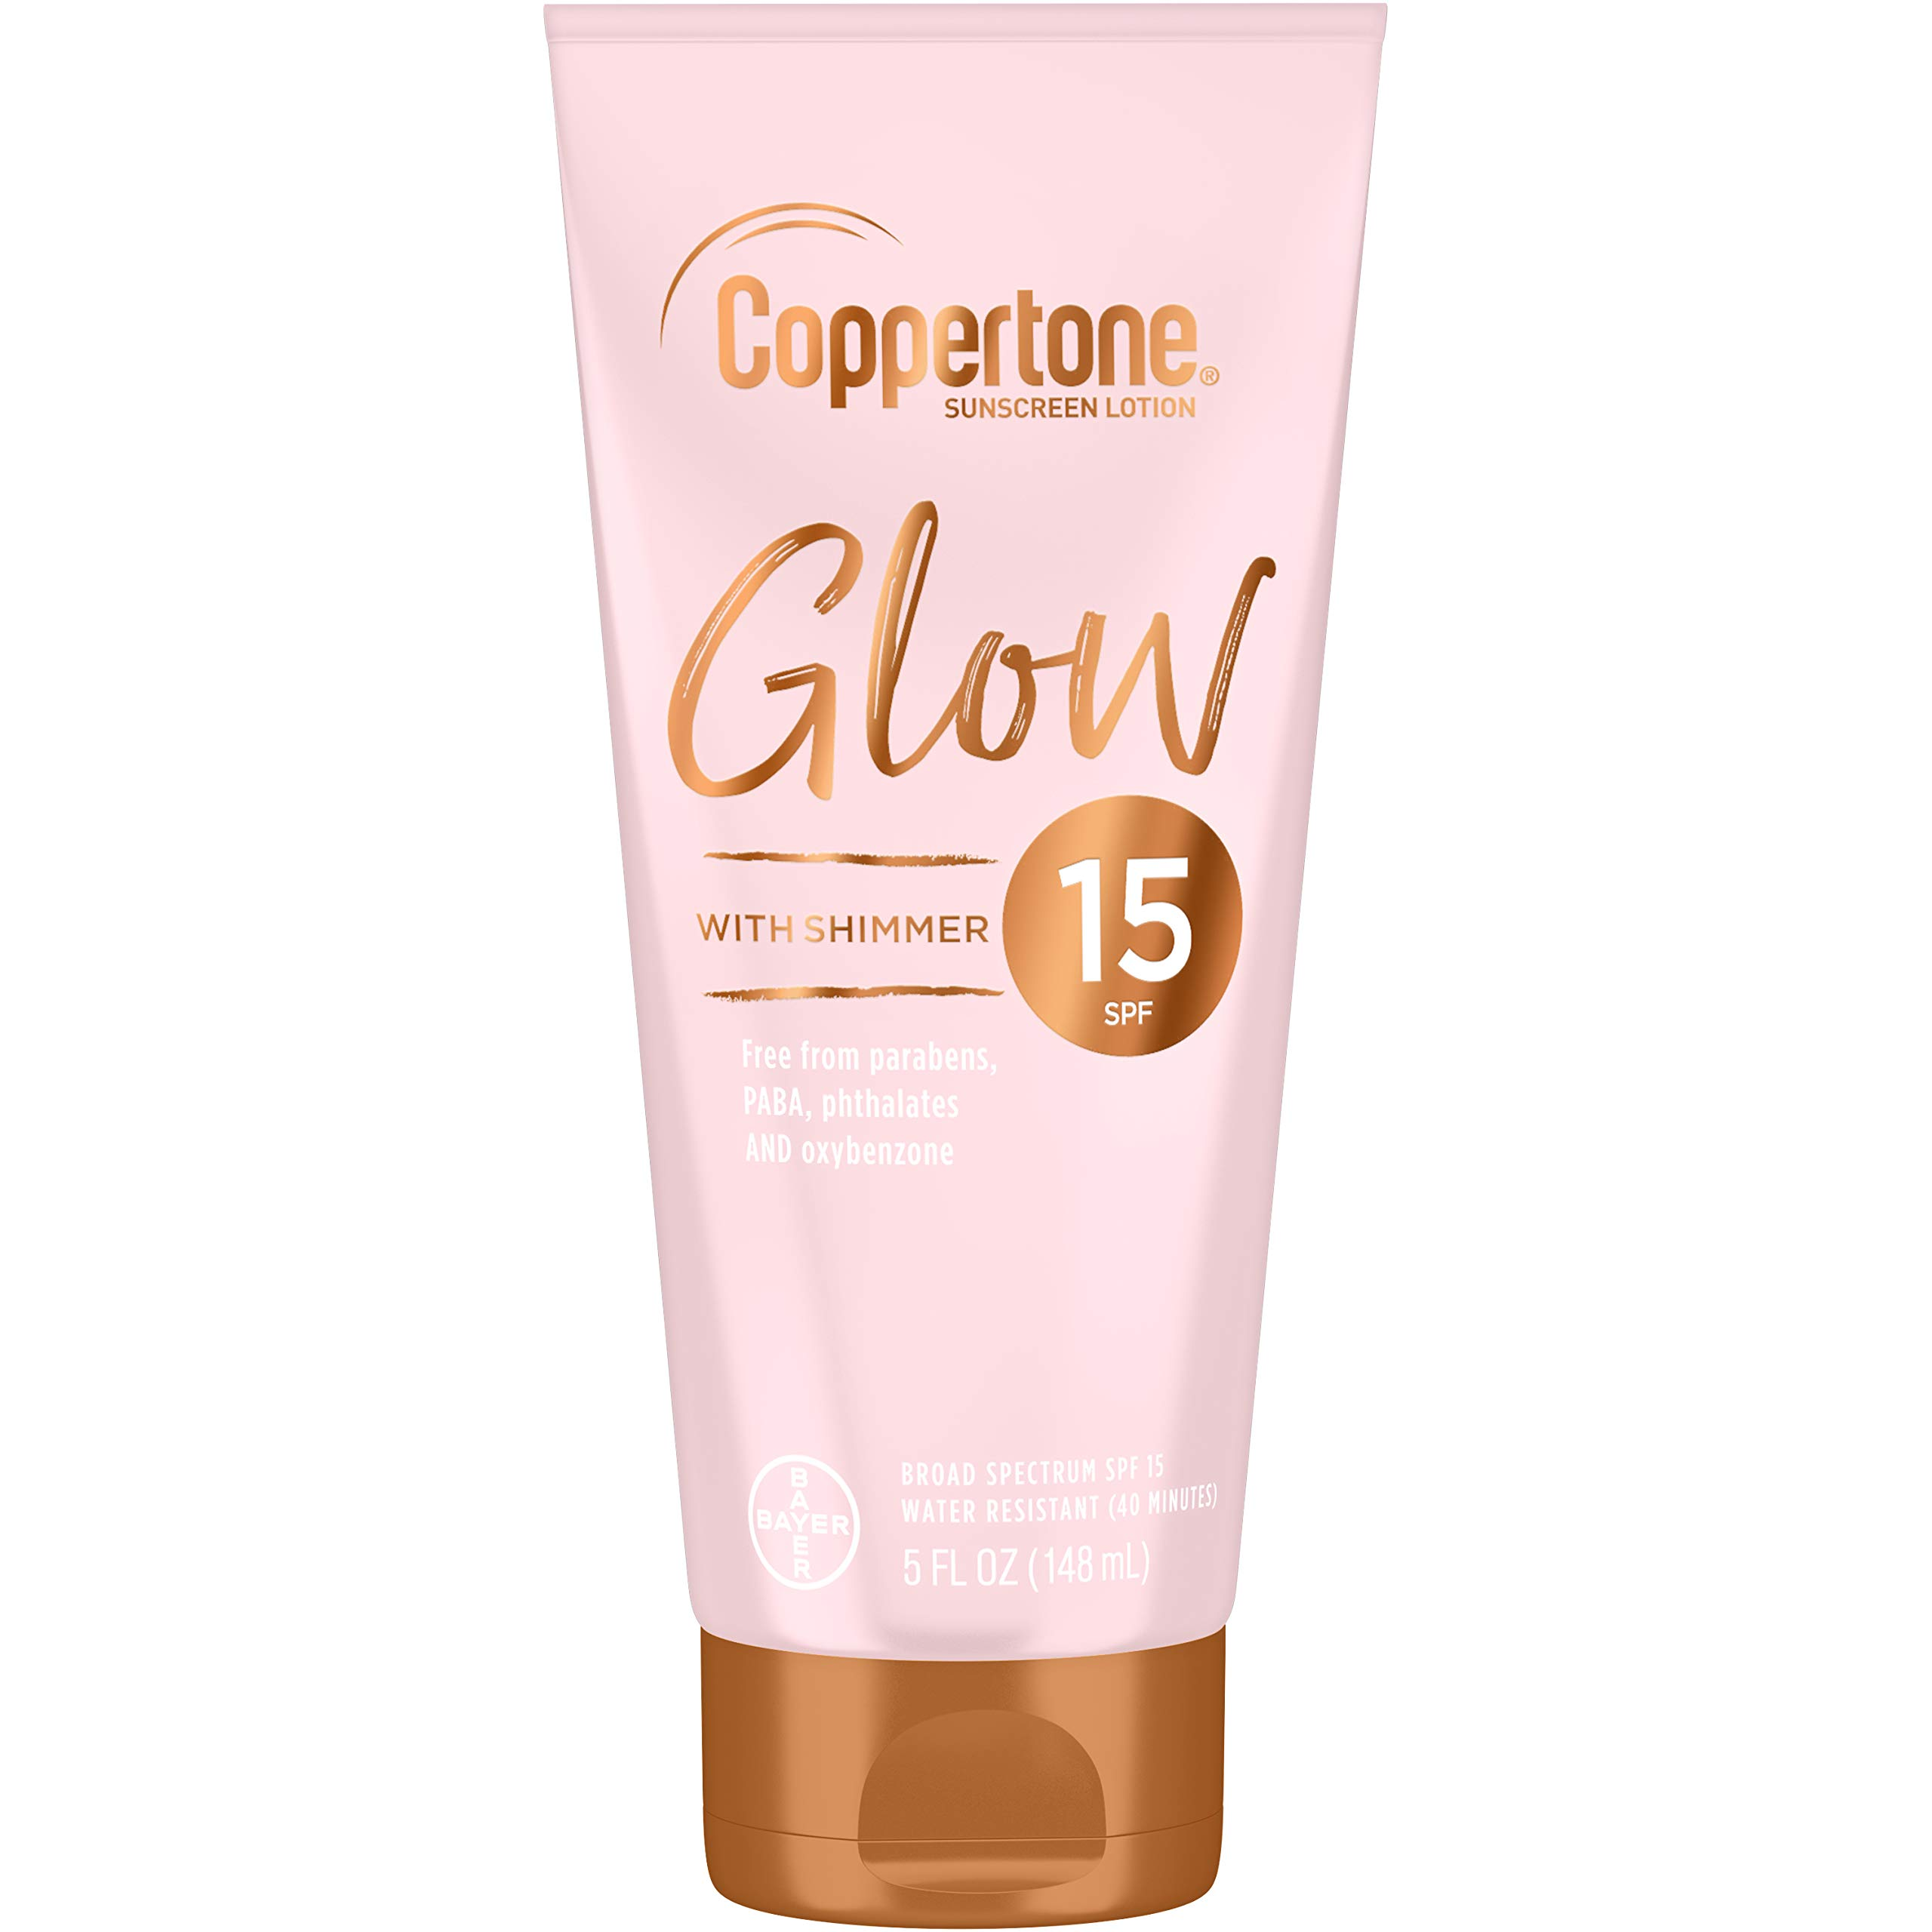 Coppertone - Coppertone Glow Hydrating Sunscreen Lotion with Illuminating Shimmer Minerals and Broad Spectrum SPF 15, Water-resistant, Fast-drying, Free of Parabens, PABA, Phthalates, Oxybenzone, 5 Fl Oz